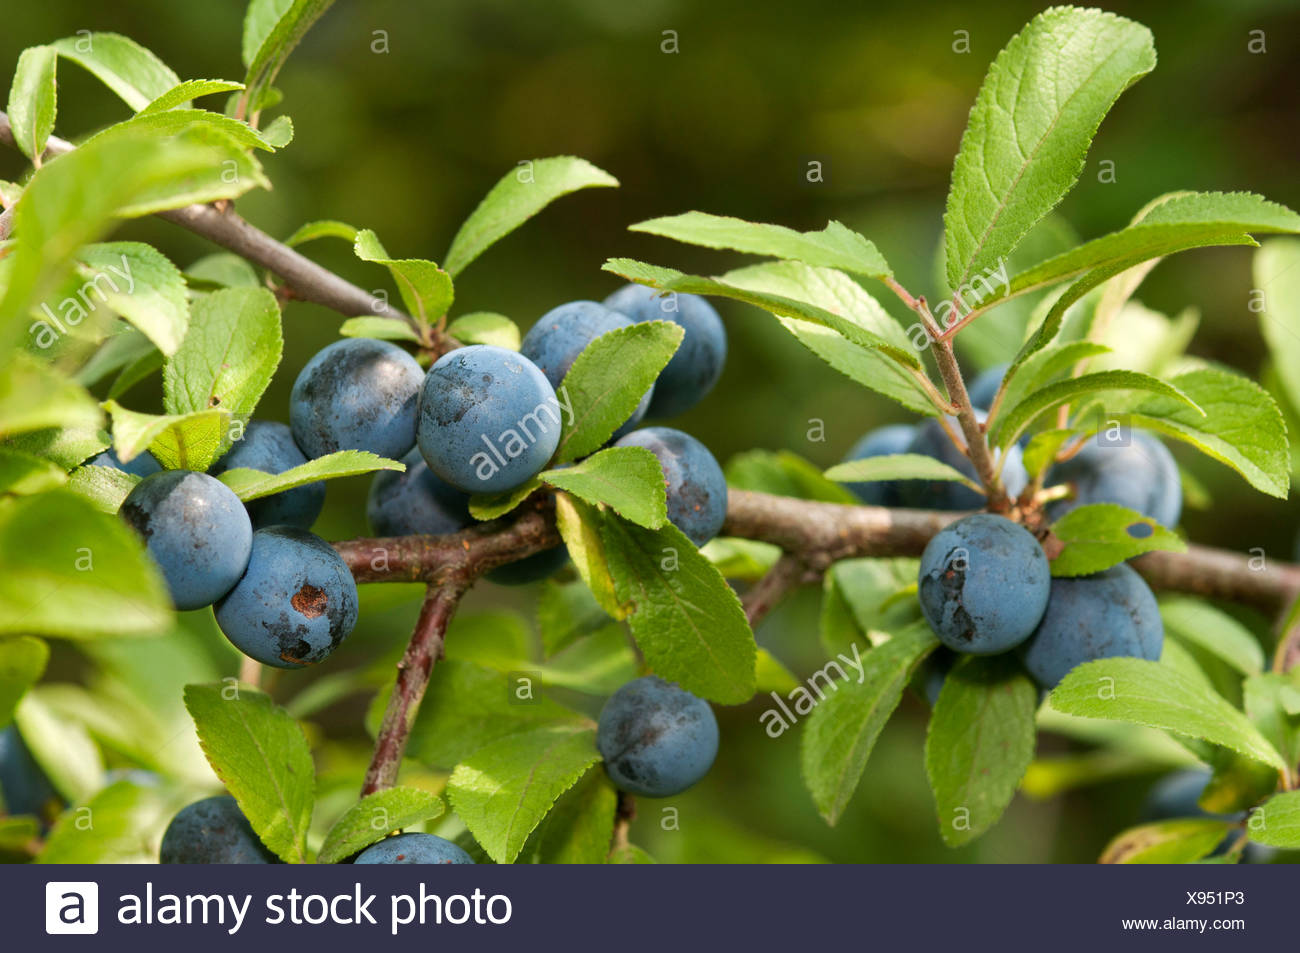 Fruit of the Sloe or Blackthorn (Prunus spinosa), Geneva, Genf, Switzerland - Stock Image